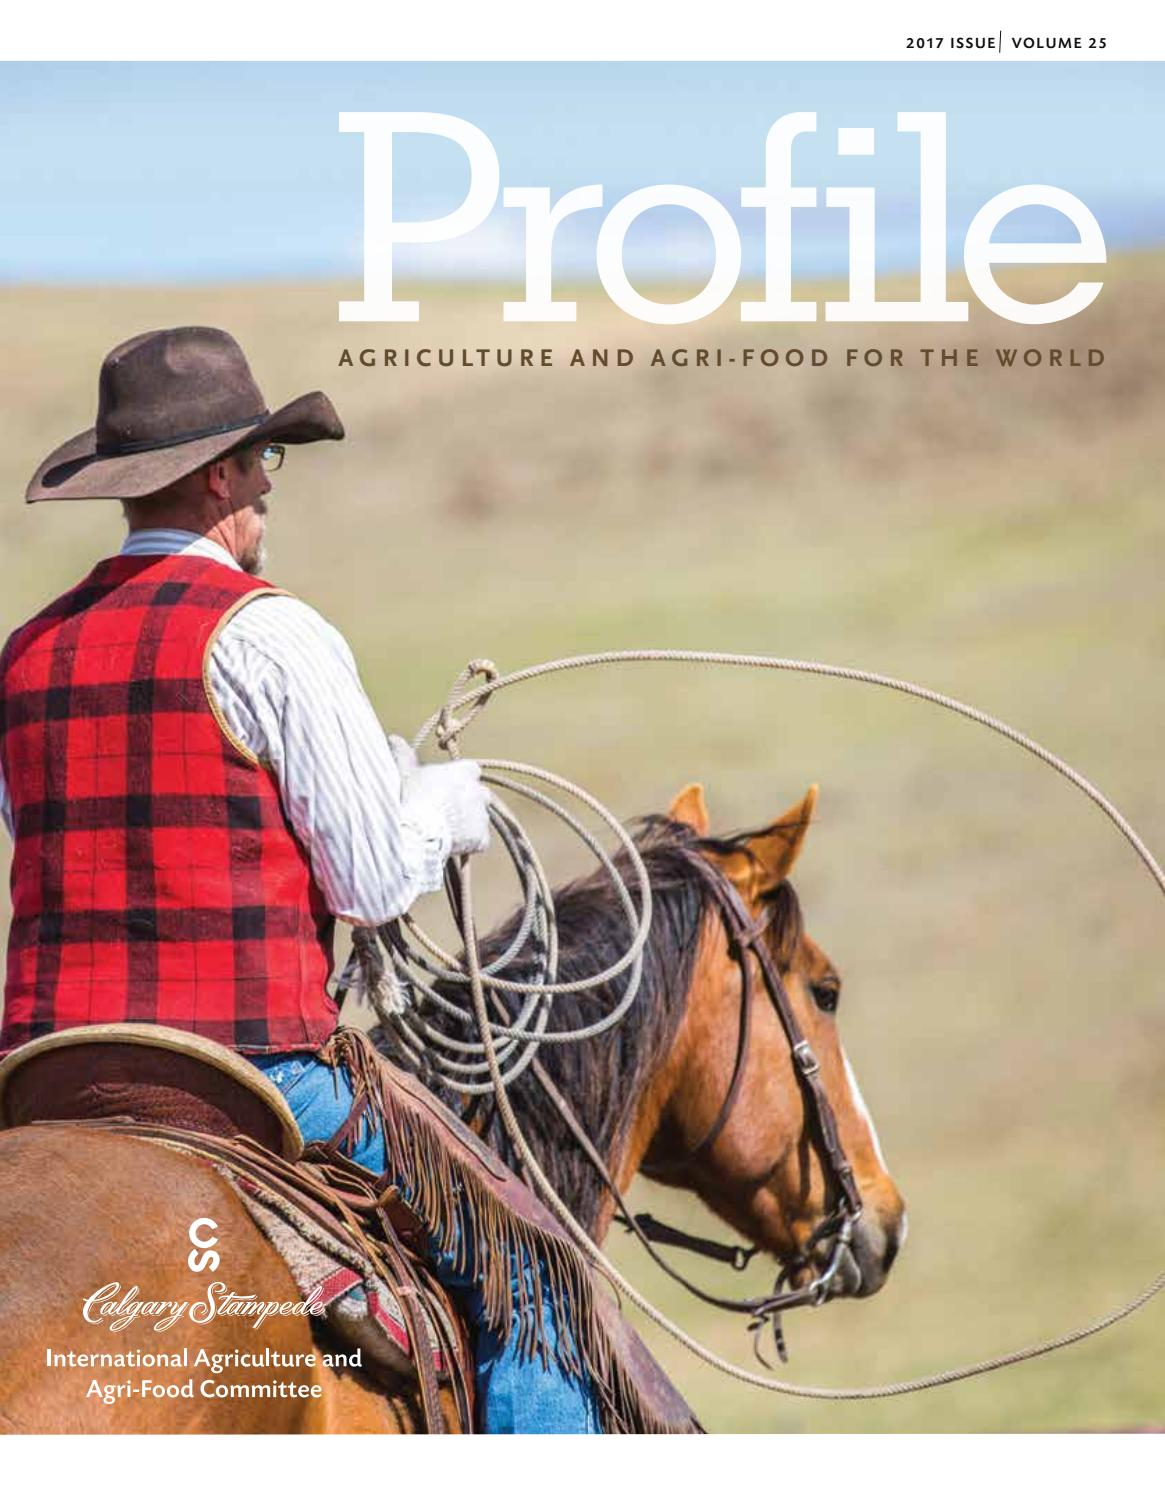 Profile 2017 By Calgary Stampede International Agriculture